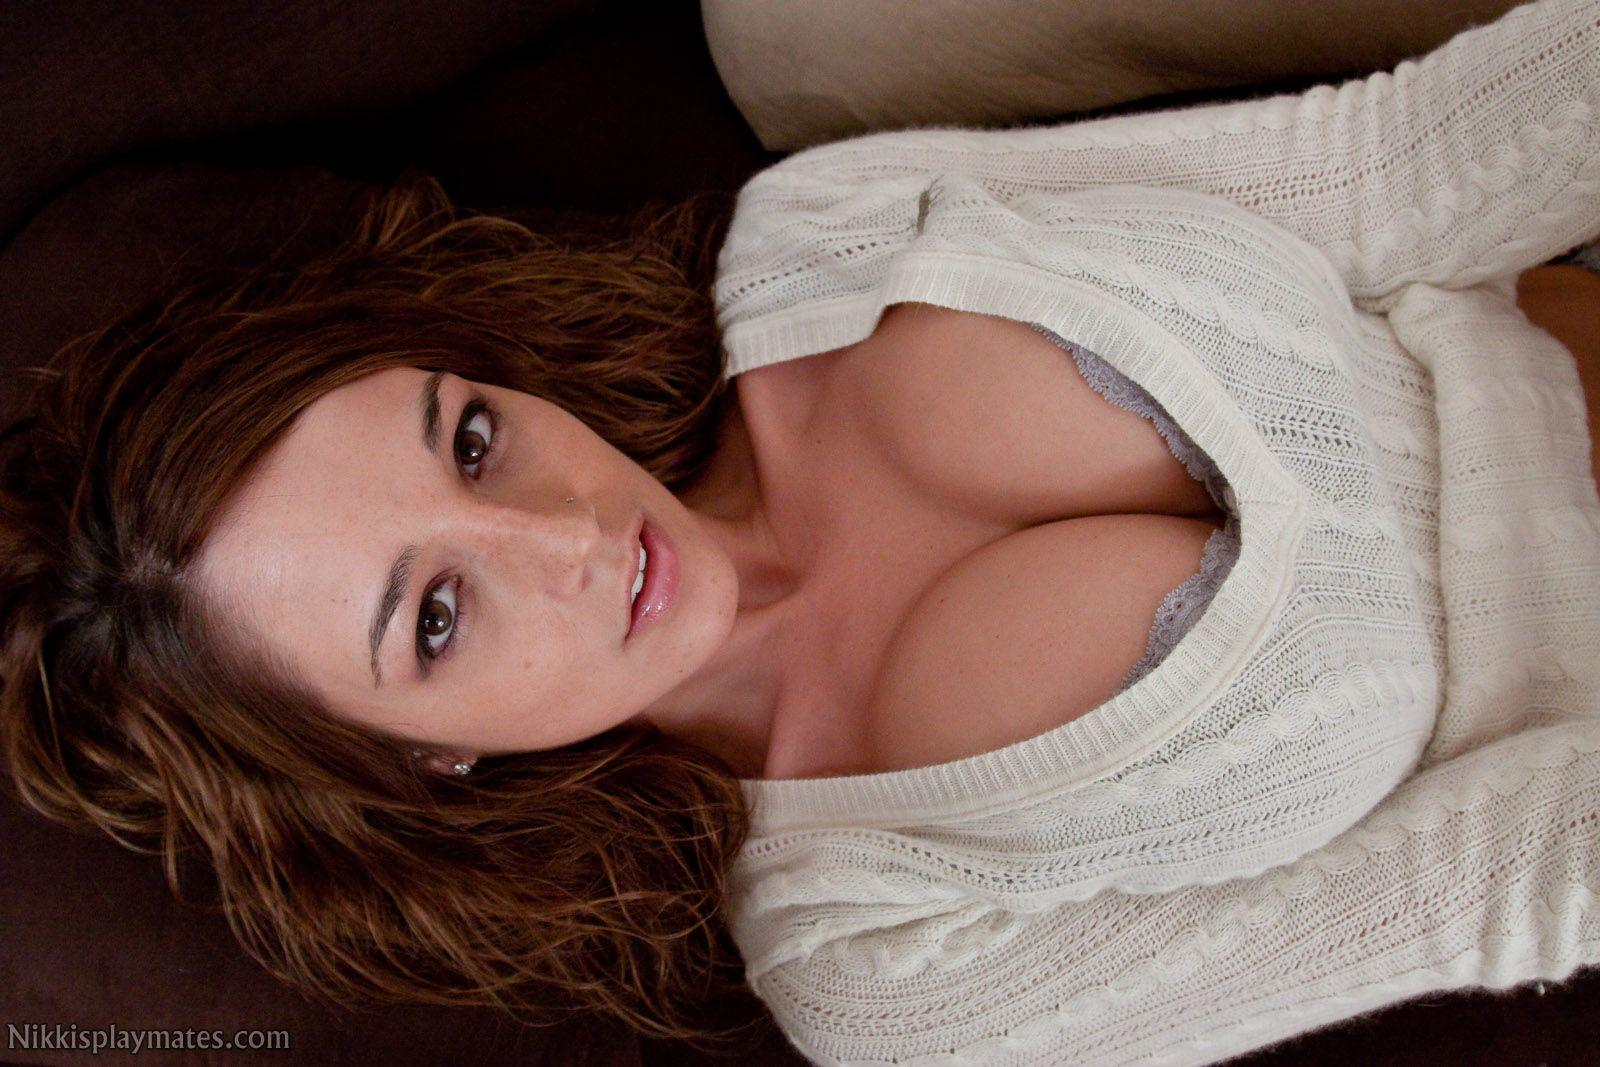 She lays back and shows her wonderful cleavage